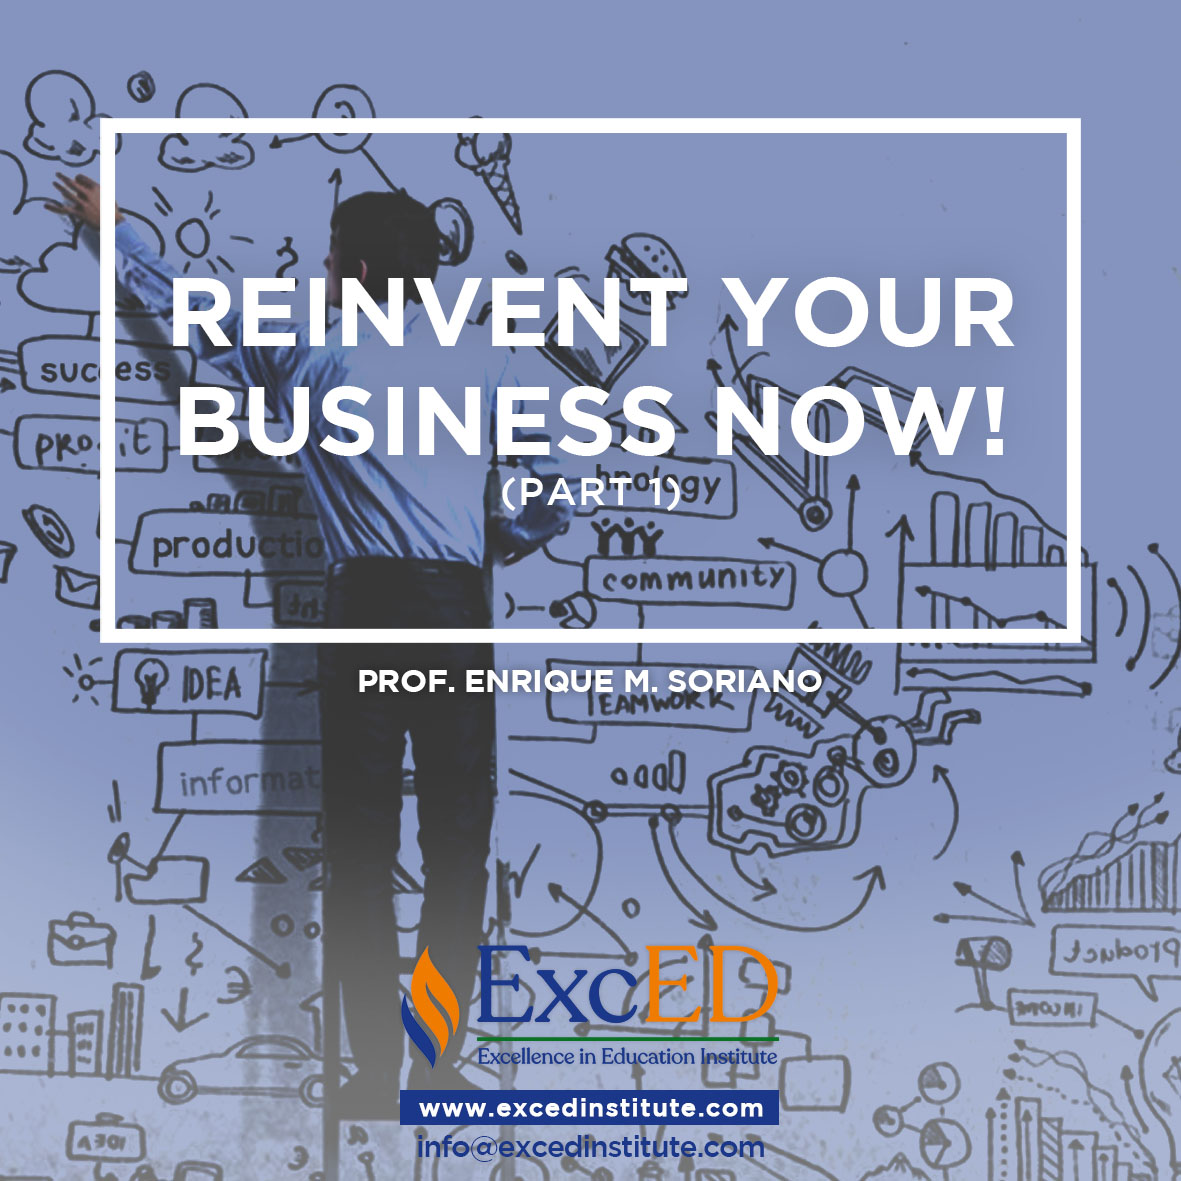 Reinvent Your Business Now!